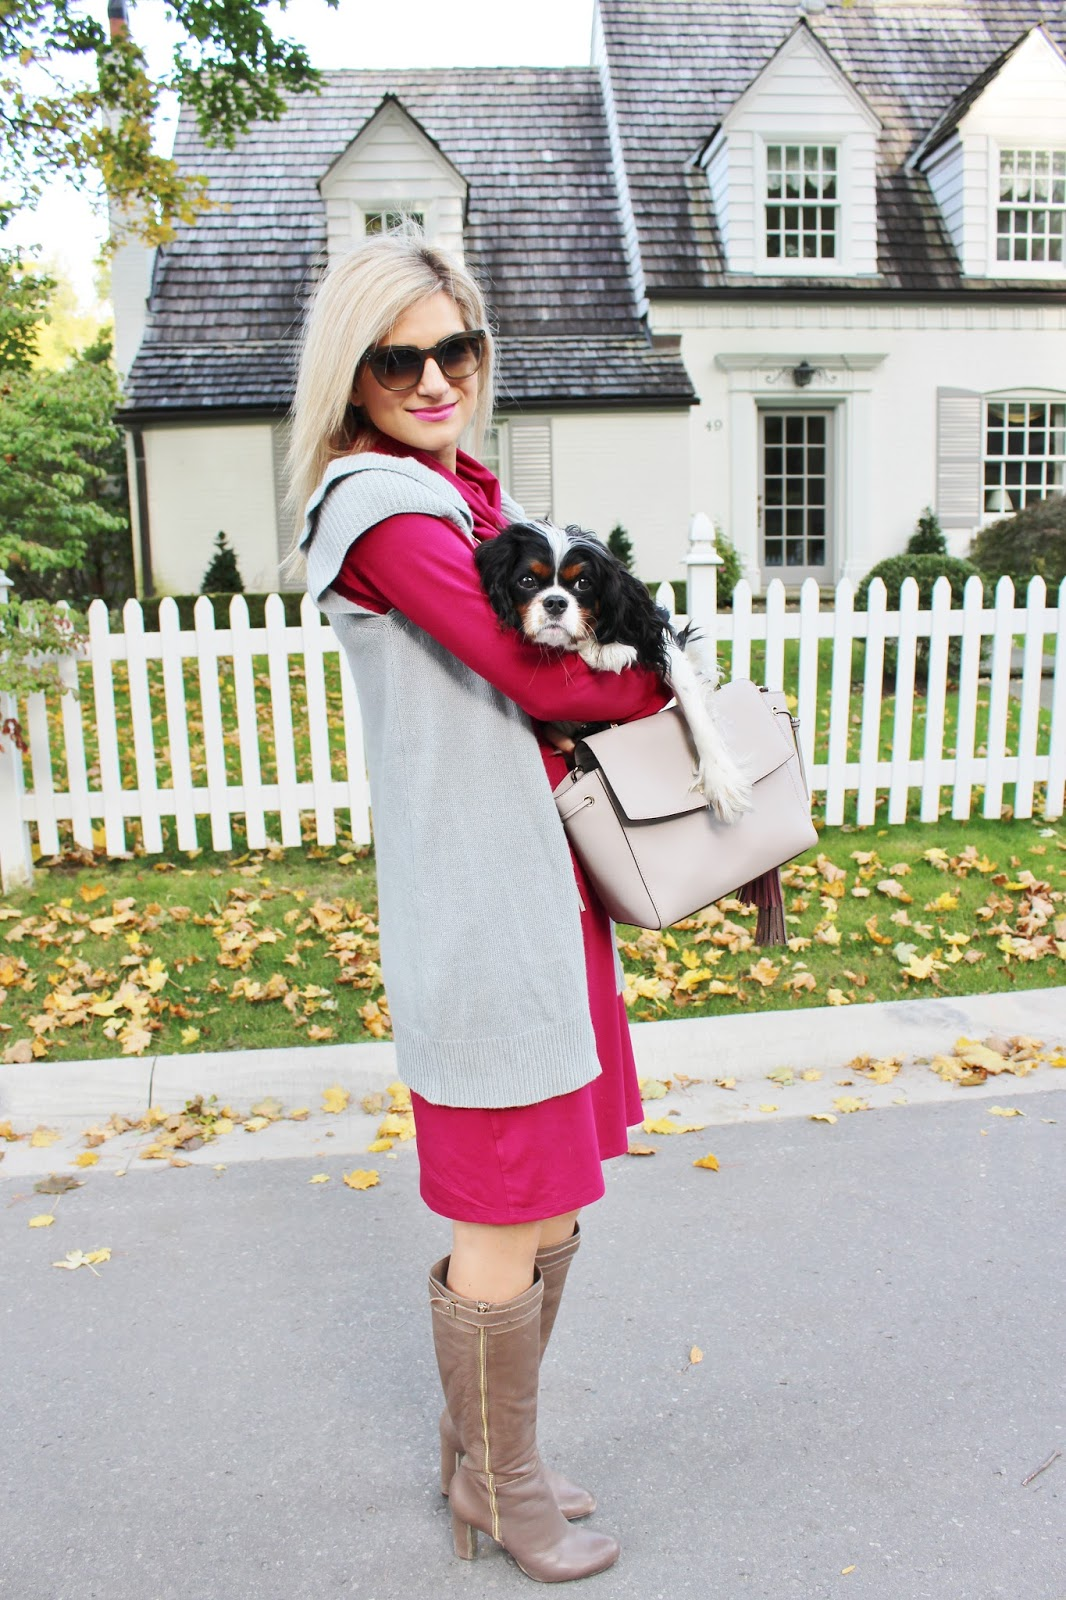 Bijuleni - Miik Cowl Pocket Cranberry Dress with Grey Sweater Vest, Ann Taylor Ankle Boots, Kate Spade handbag, Cavalier King Charles Puppy